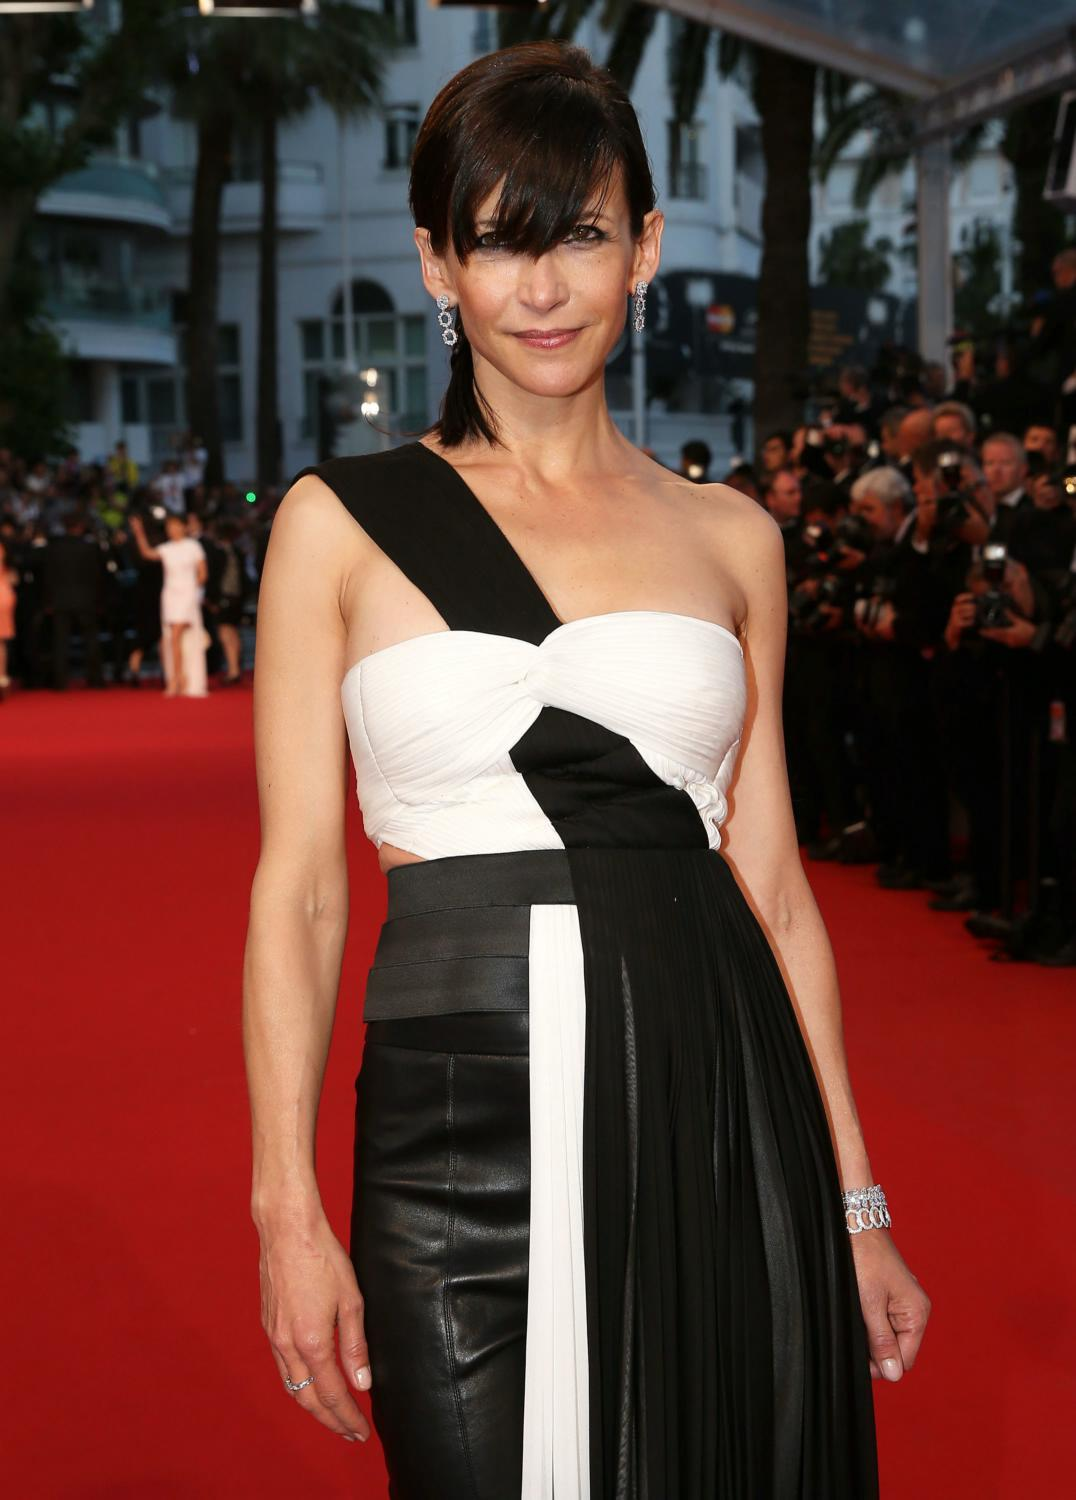 sophie-marceau-at-cannes-sea-of-trees-premiere-may-1